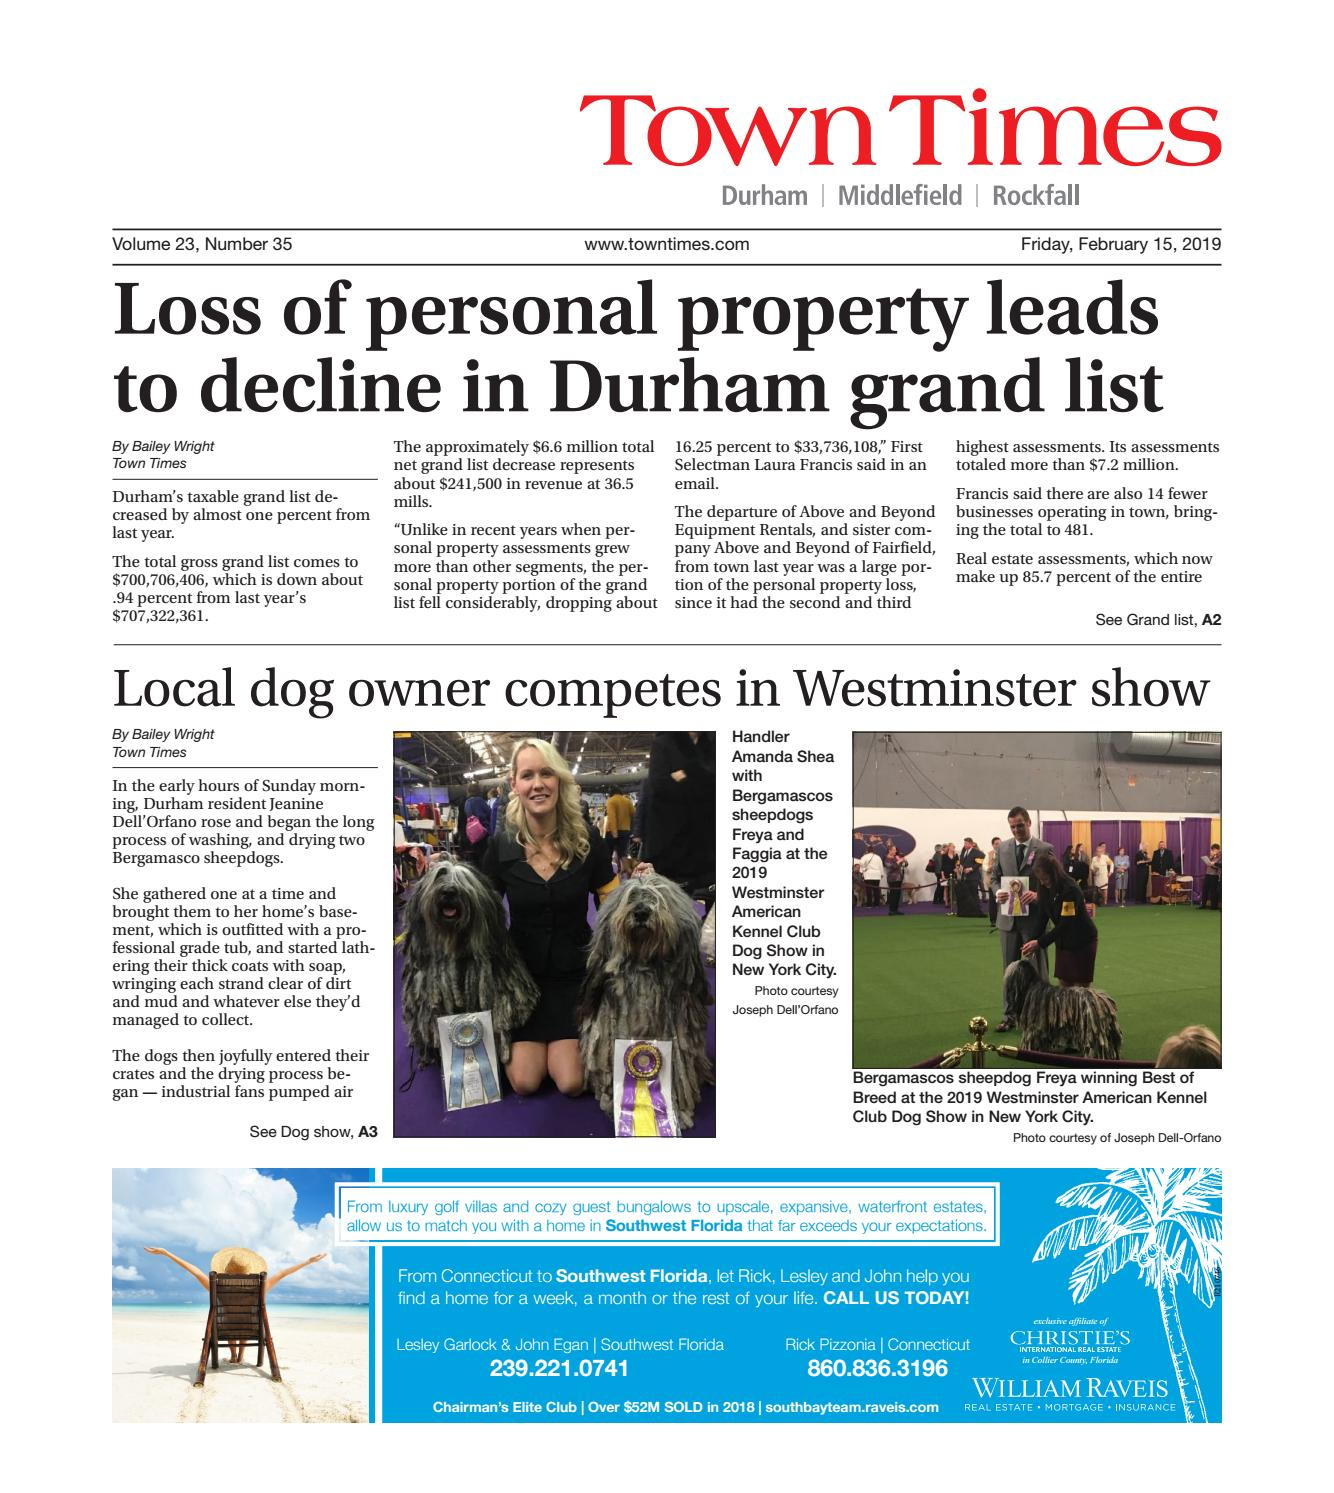 Town Times, Feb  15, 2019 by Town Times Newspaper - issuu